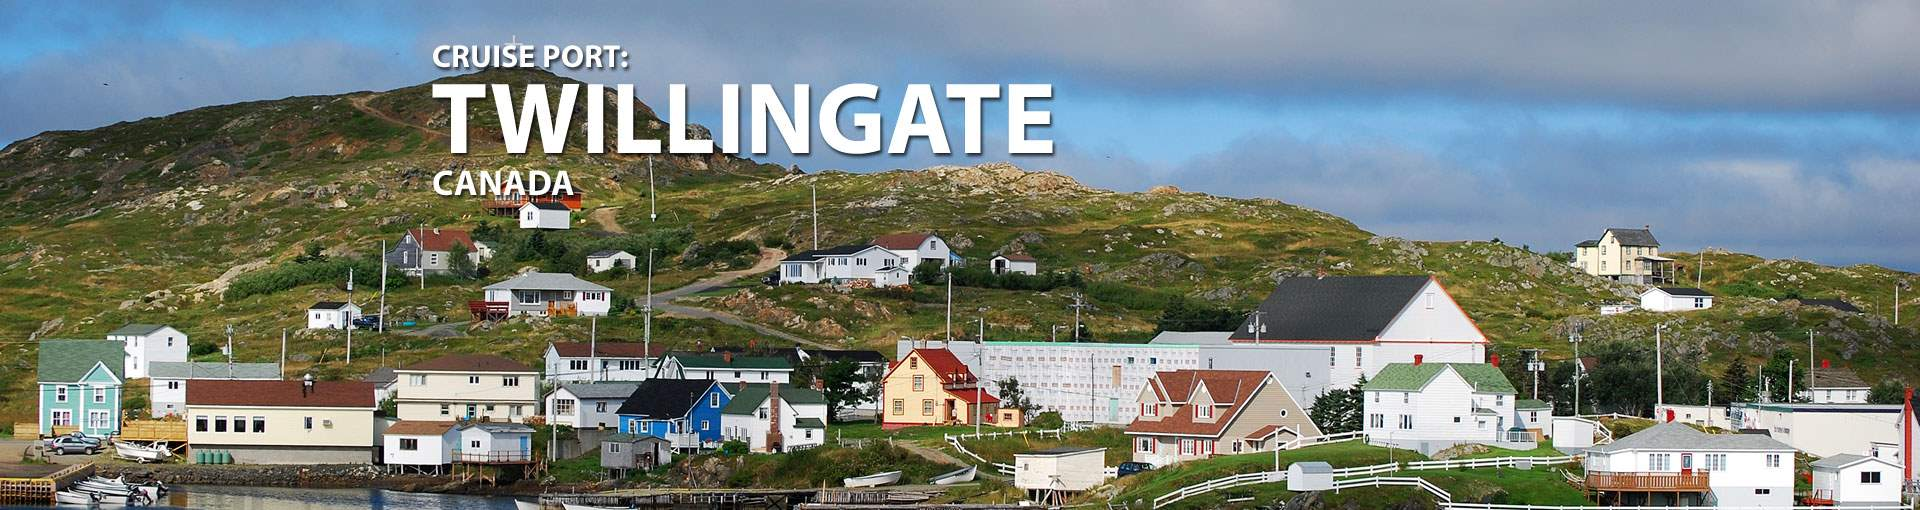 Cruises to Twillingate, Canada